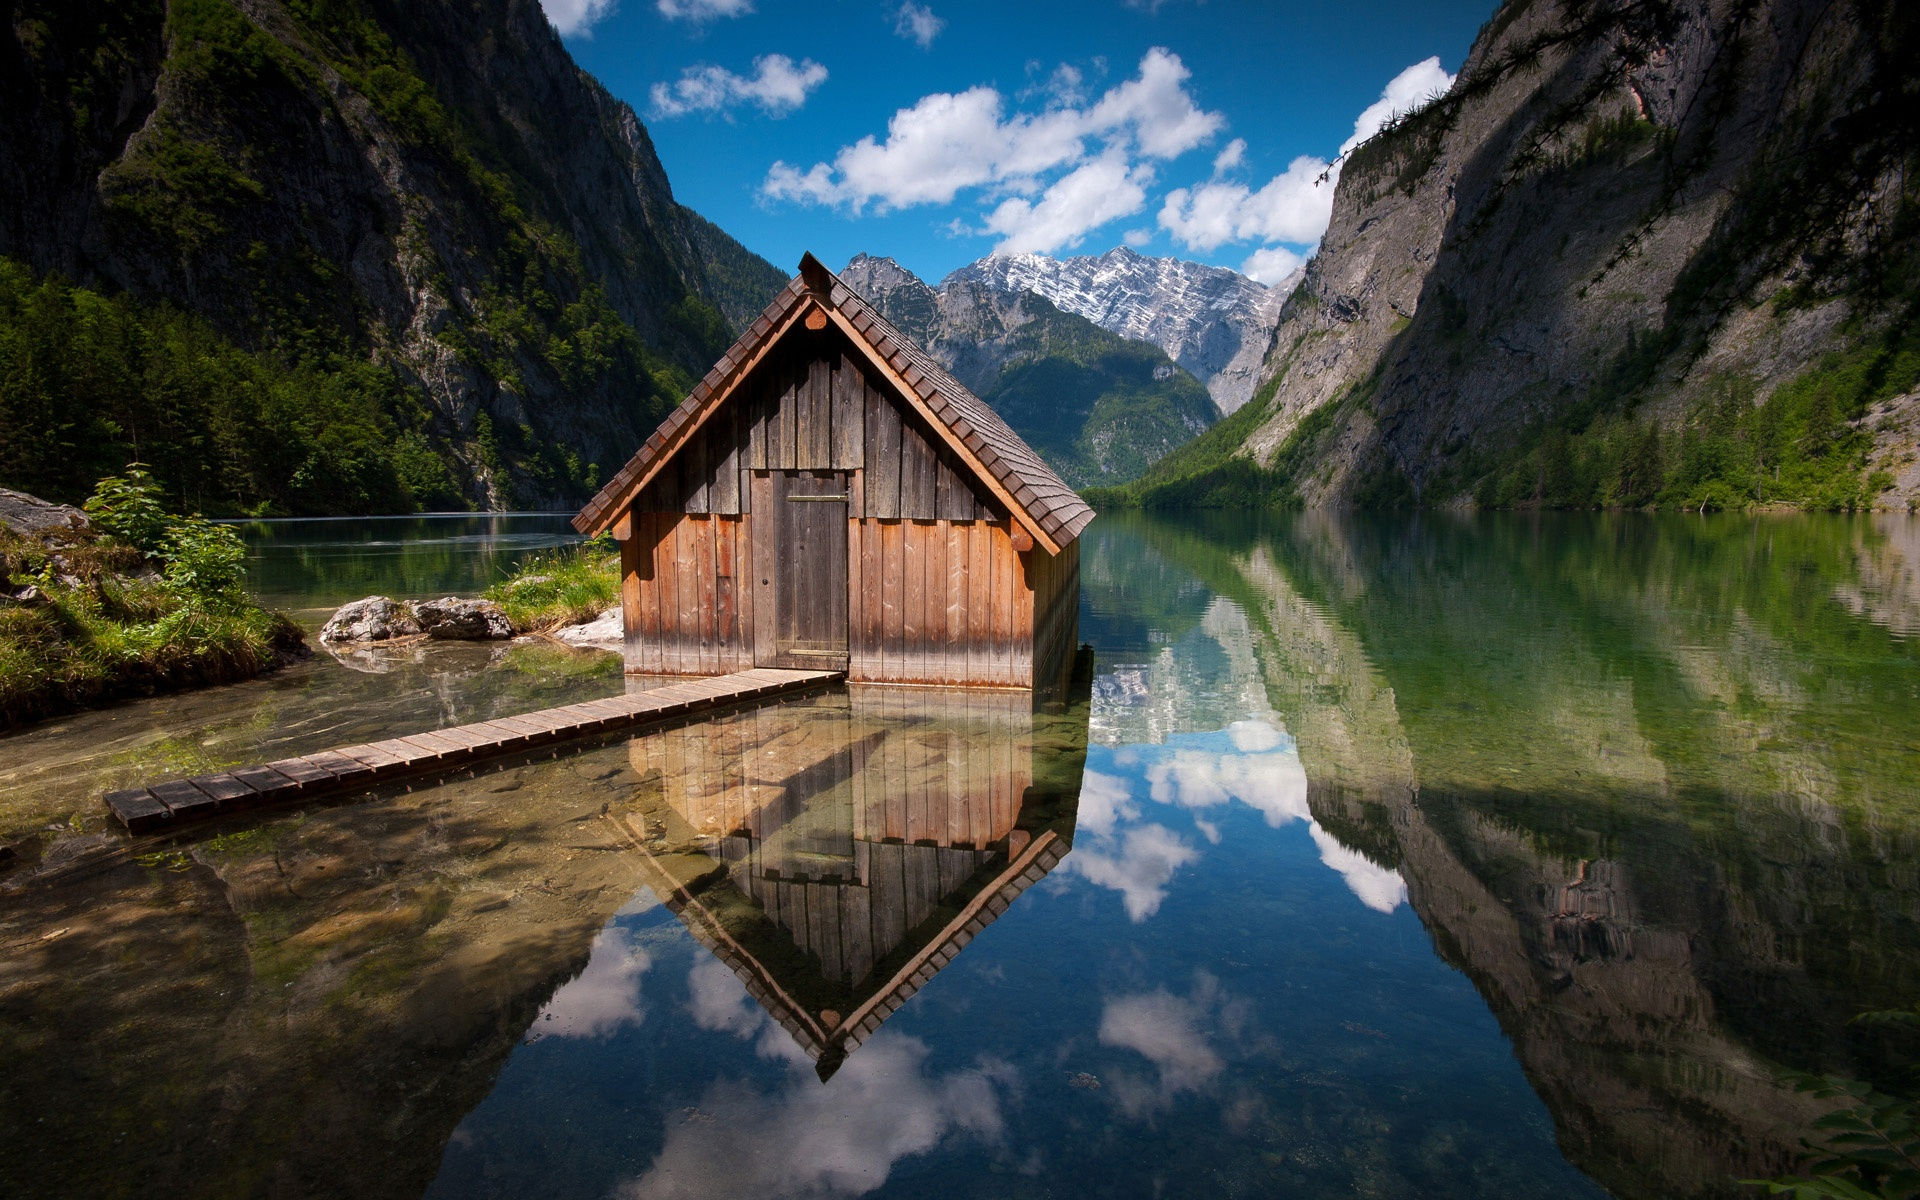 peaceful wood house mountain and lake images picture wallpaper download